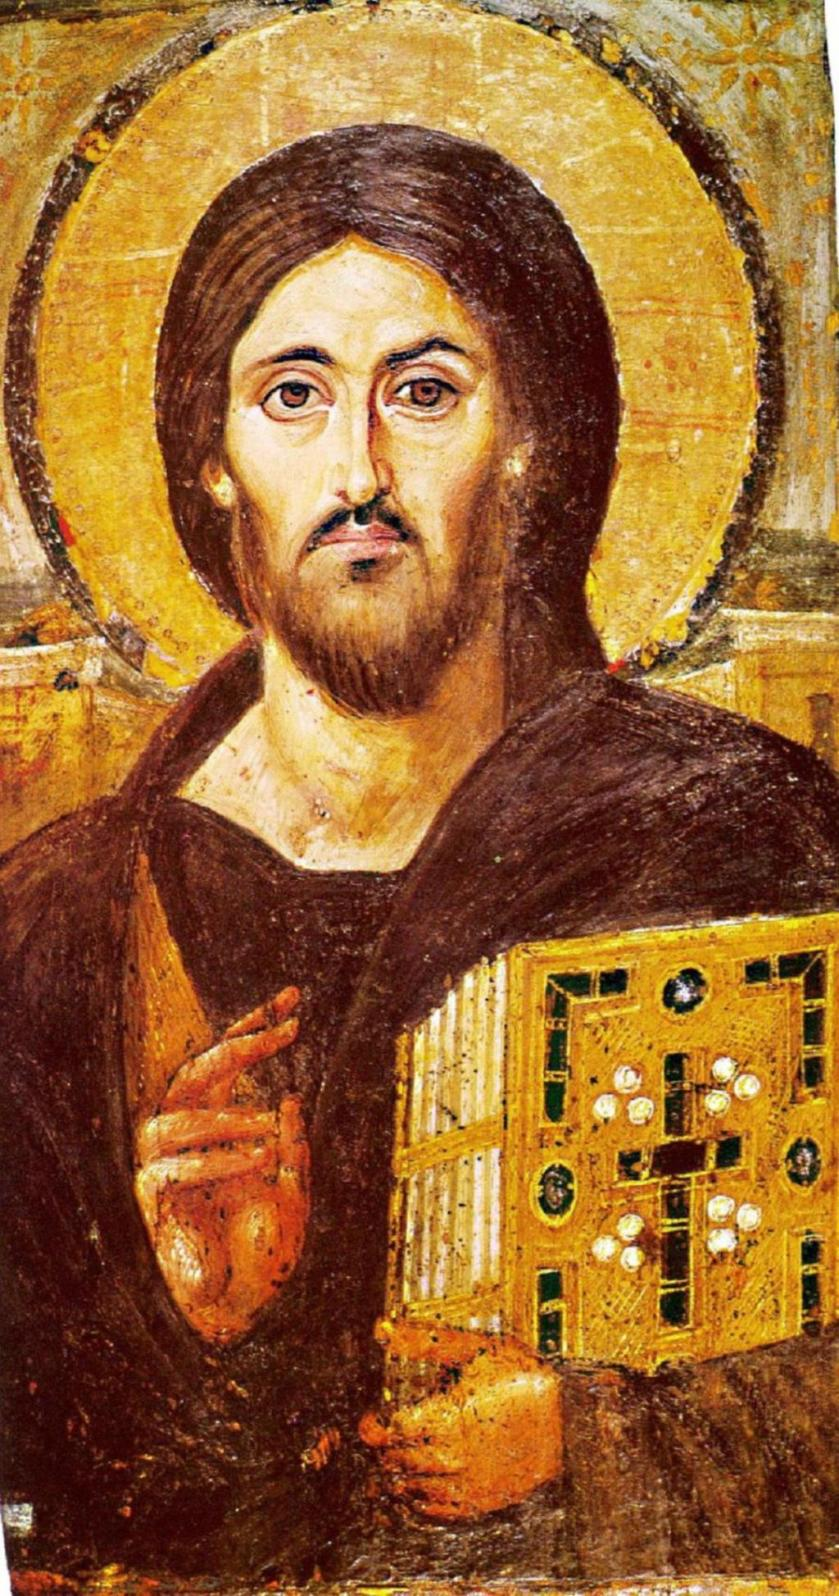 unknown-artist-christ-pantocrator-st-catherine-monastery-mount-sinai-egypt-6th-century1.jpg